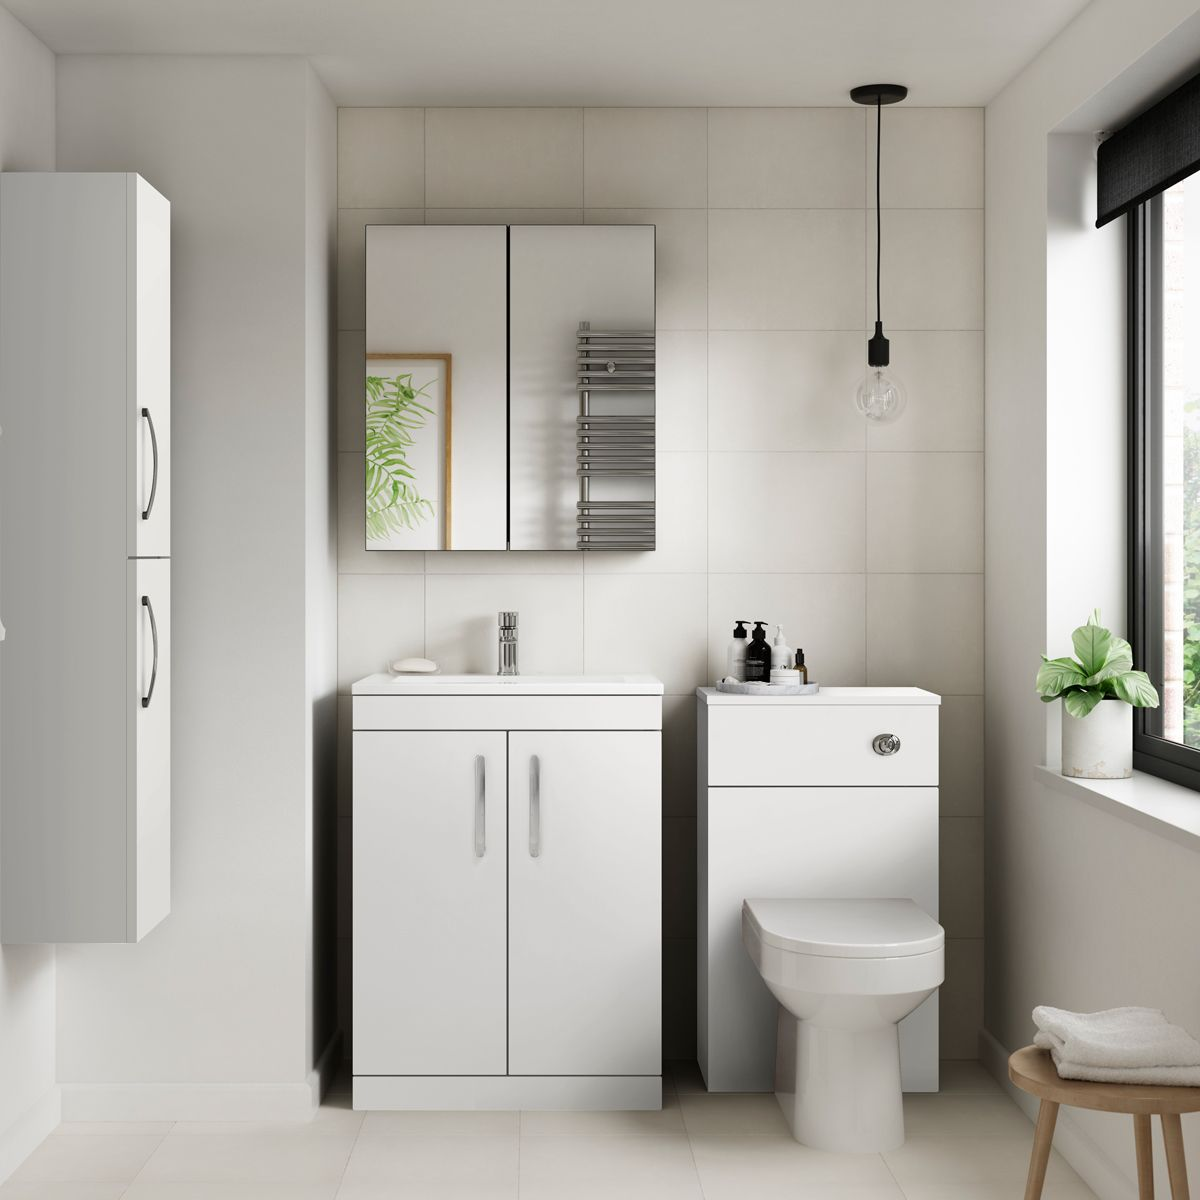 Premier Athena Gloss White Double Door Tall Unit 300mm Lifestyle